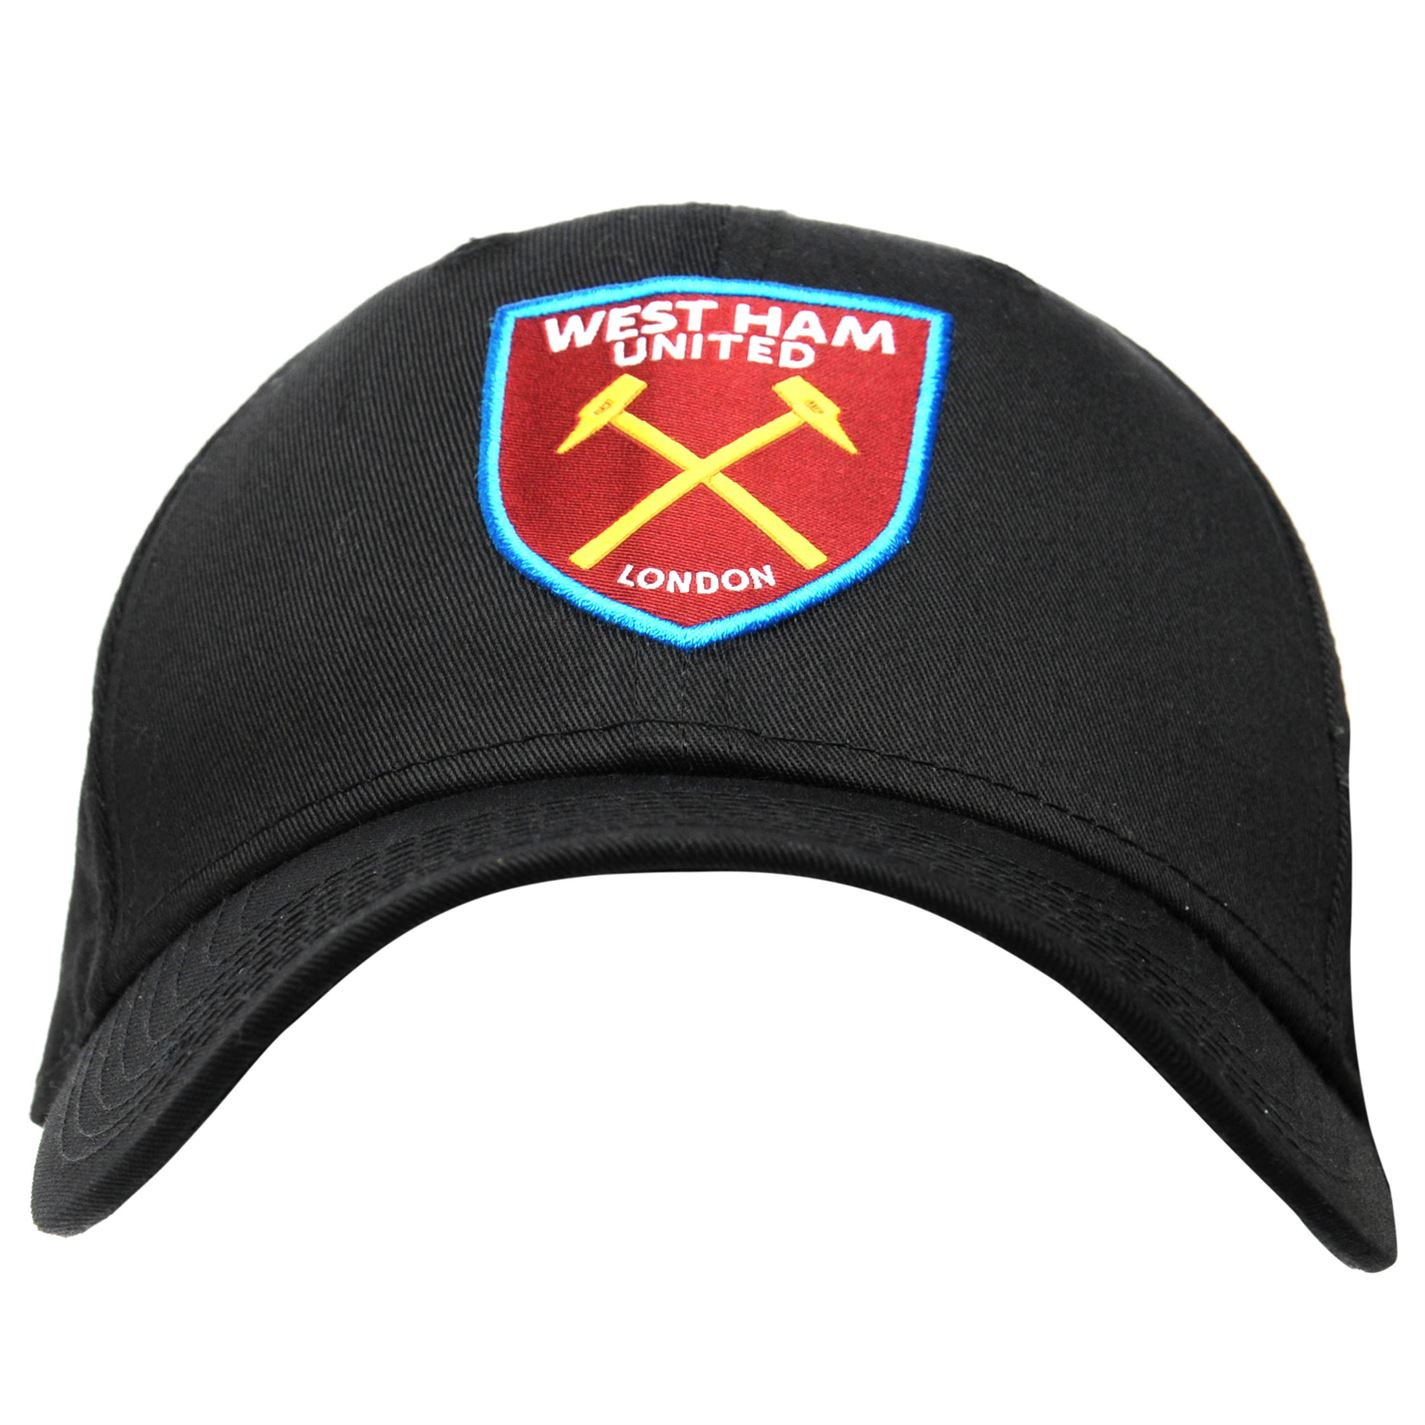 New Era West Ham Mens Gents Football Cap  ce7b487403fb